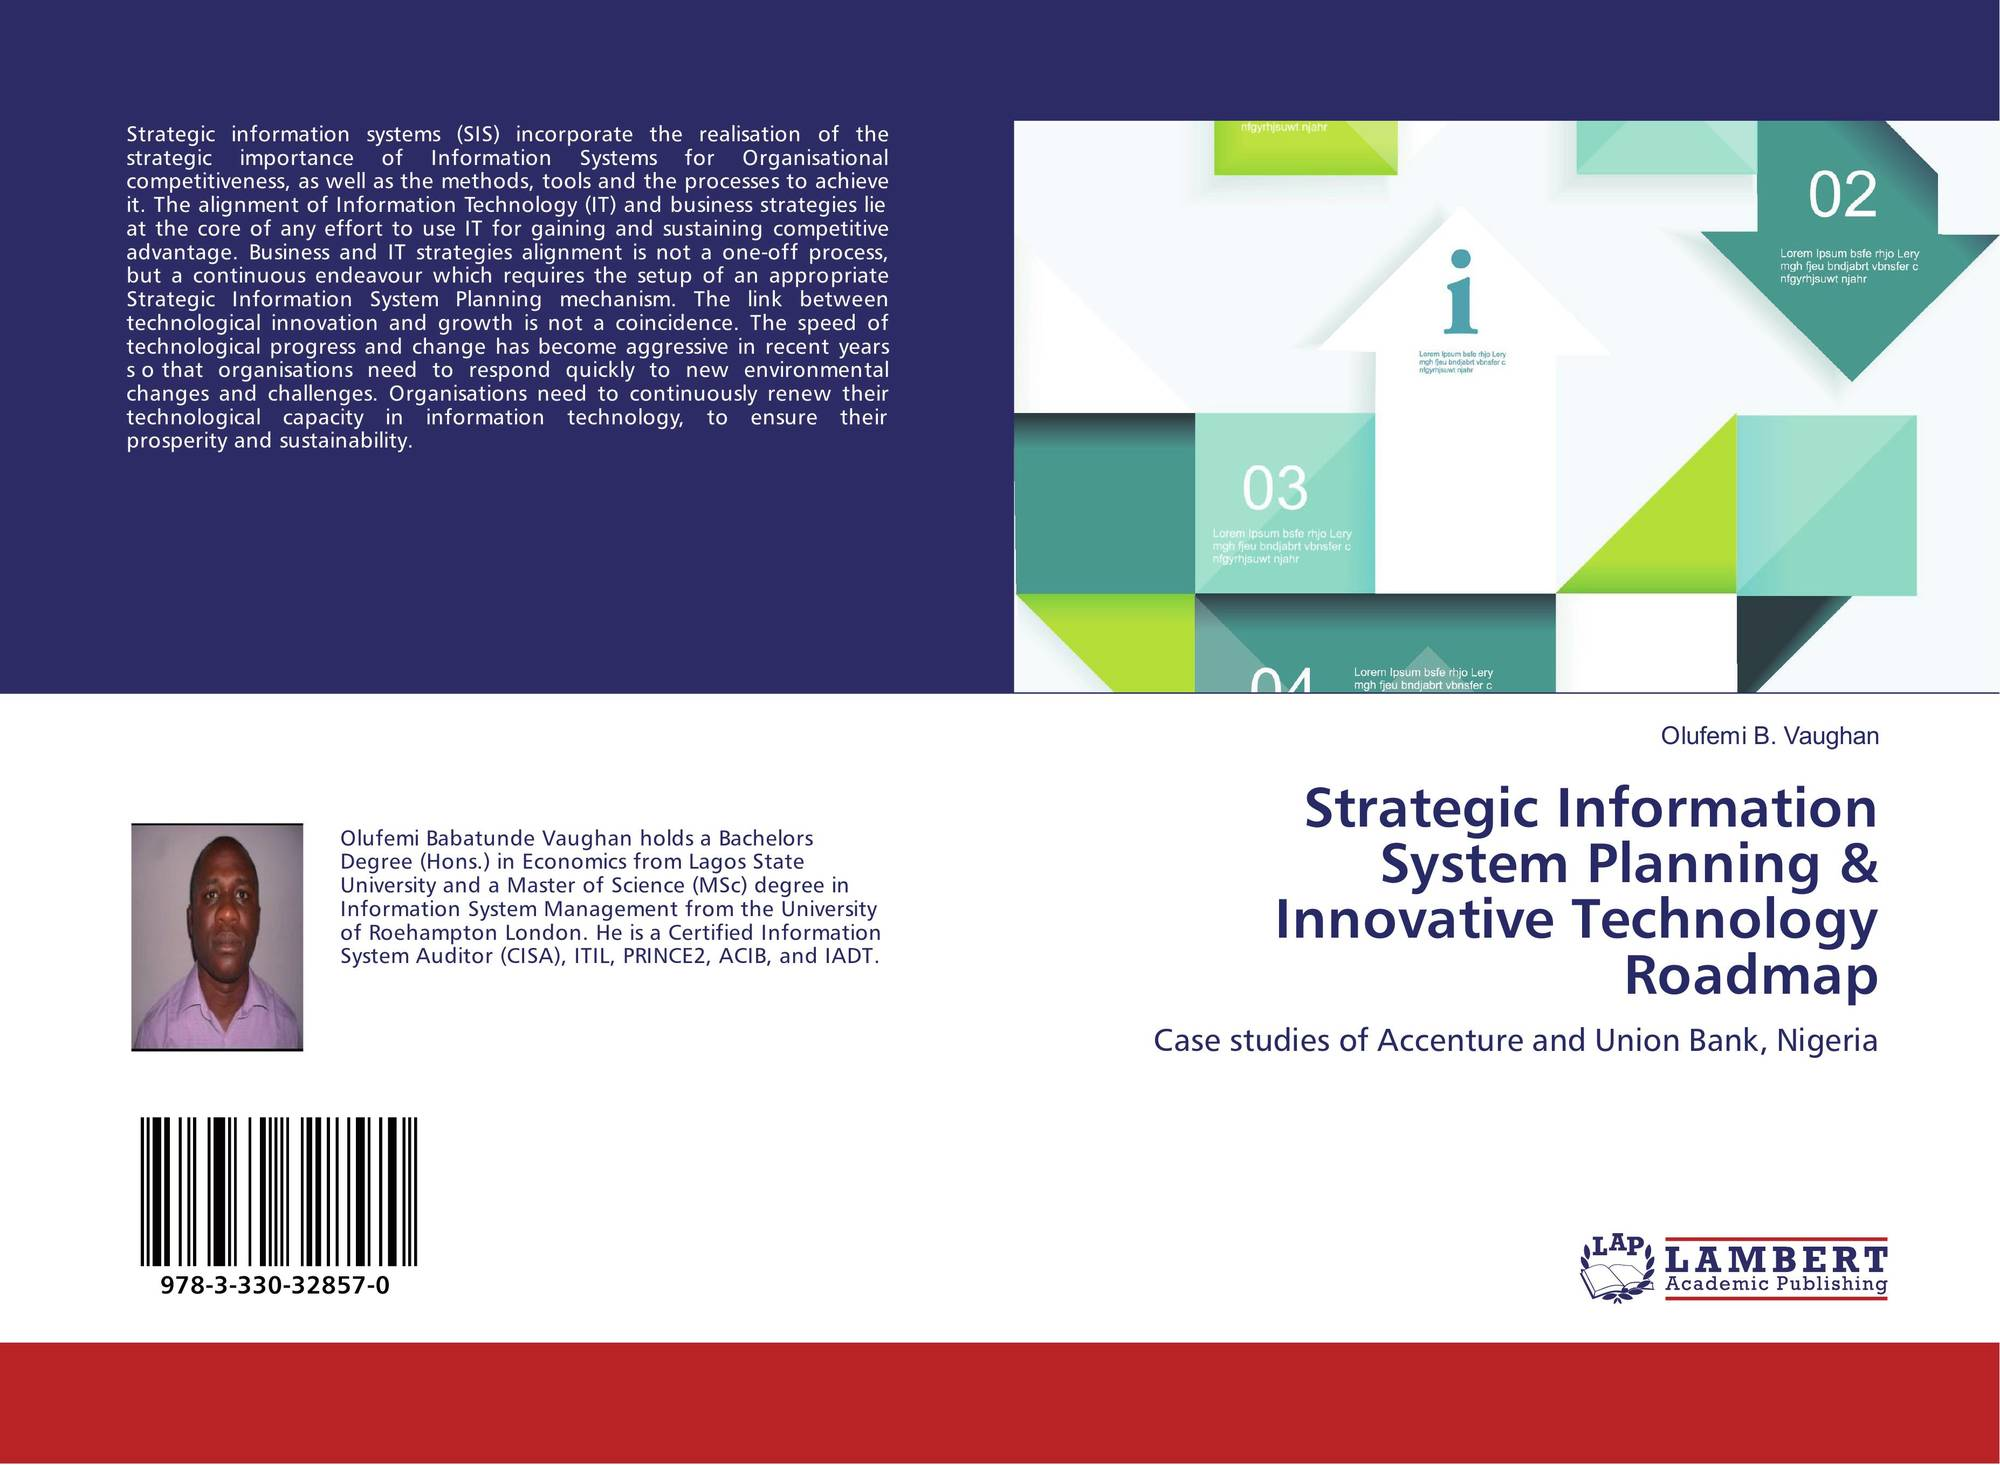 Strategic Information System Planning & Innovative ... on healthcare road map, lean six sigma road map, travel road map, software product road map, product development road map, capability road map, data warehouse road map, information system road map, purchasing road map, data governance road map, art road map, indiana toll road exits map, company road map, professional road map, chemistry road map, united states road map, research road map, google road map, internet road map, real estate road map,